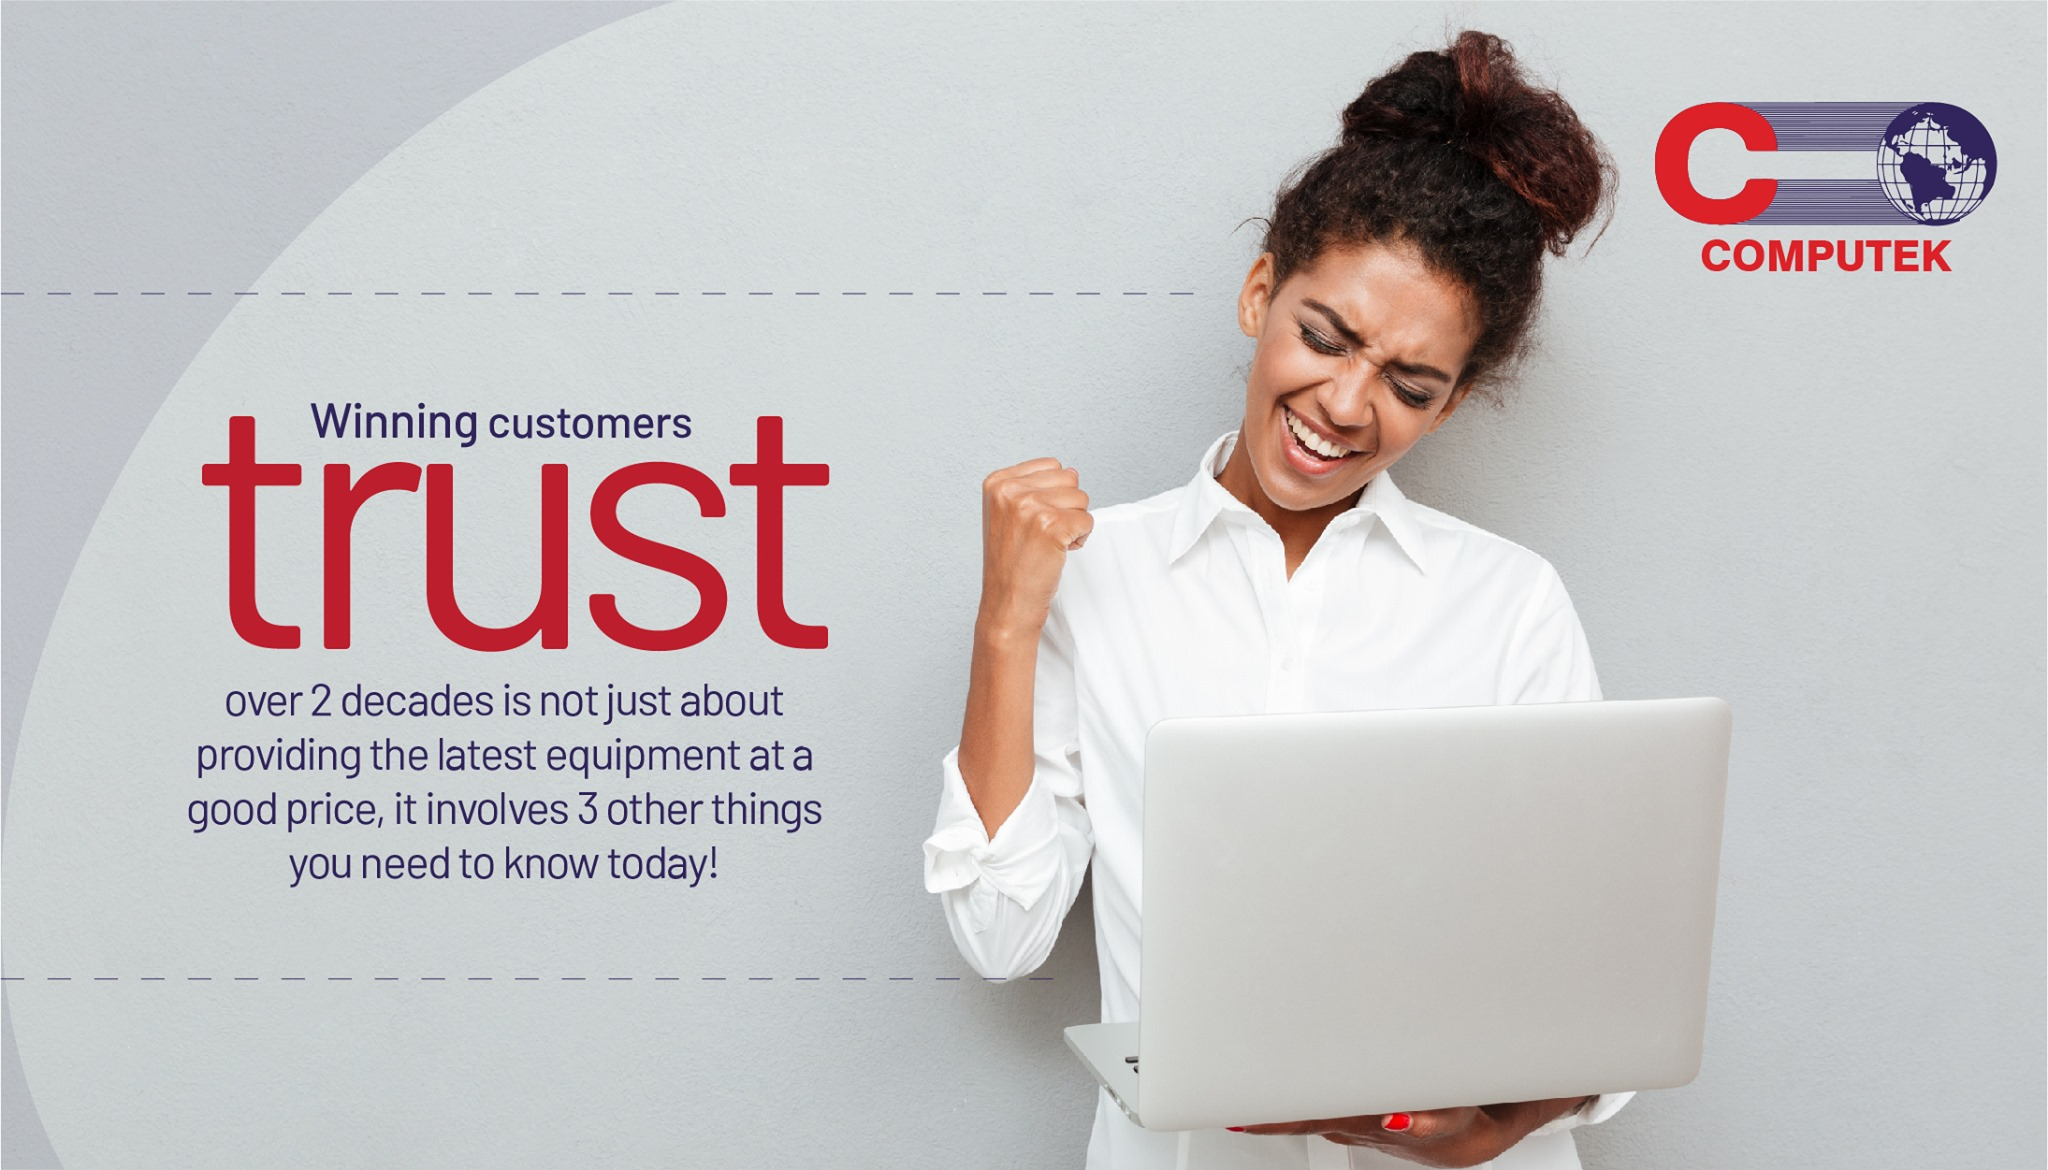 Winning customers trust over 2 decades